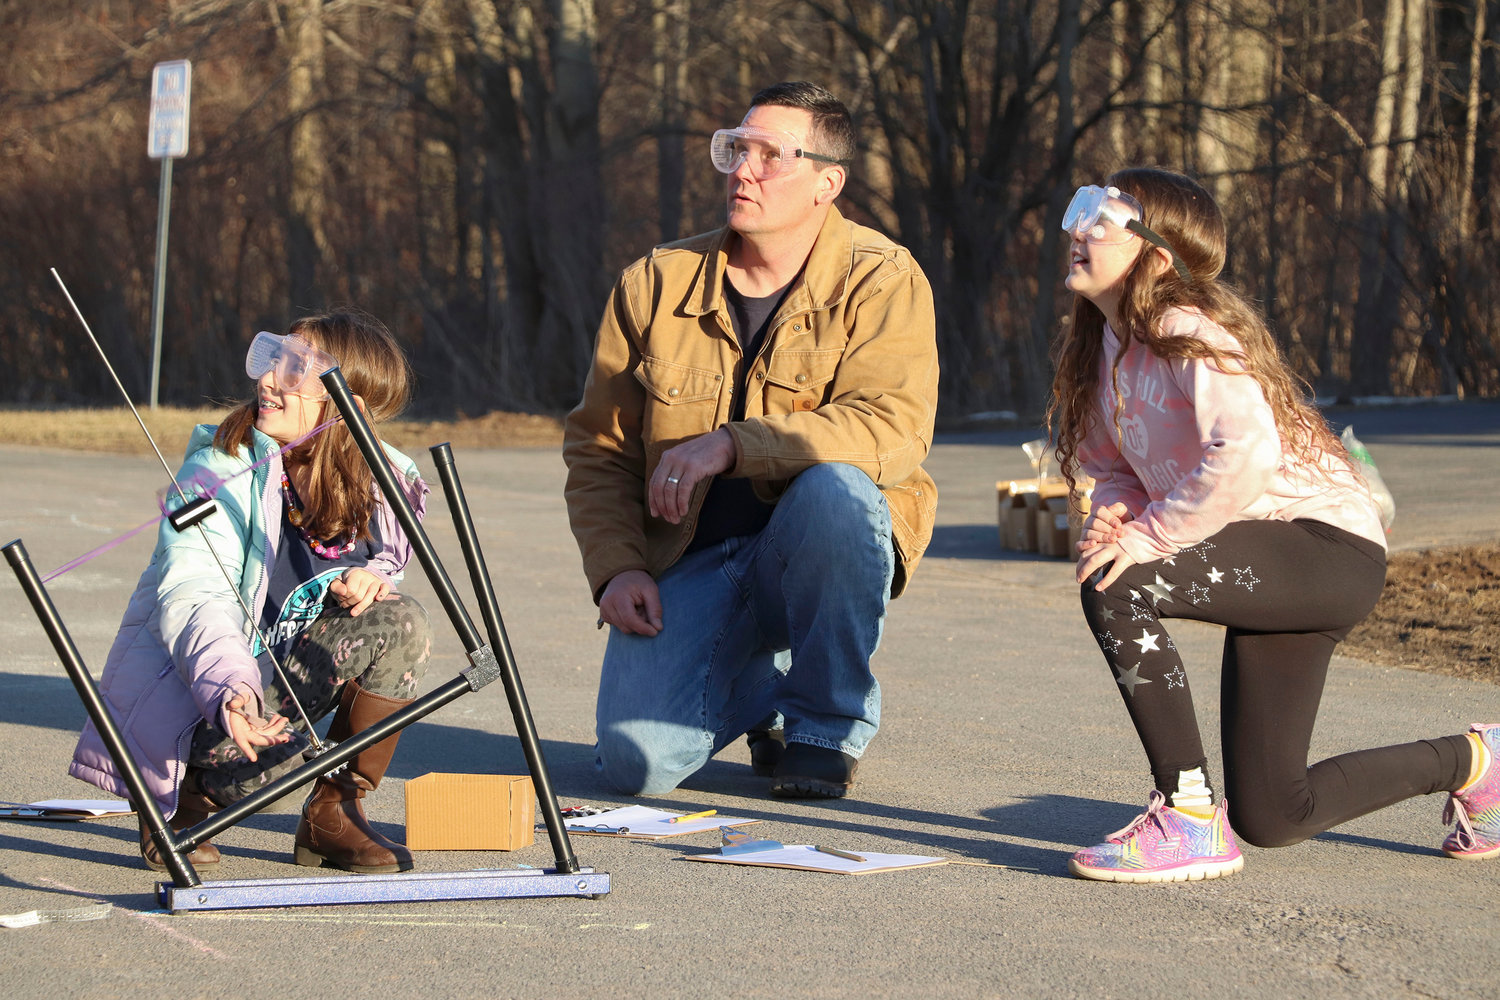 UP AND AWAY — A dad and two girls watch as their rocket takes off during the ZI3 STEAM Adventure Night at Westmoreland Upper Elementary School March 27.